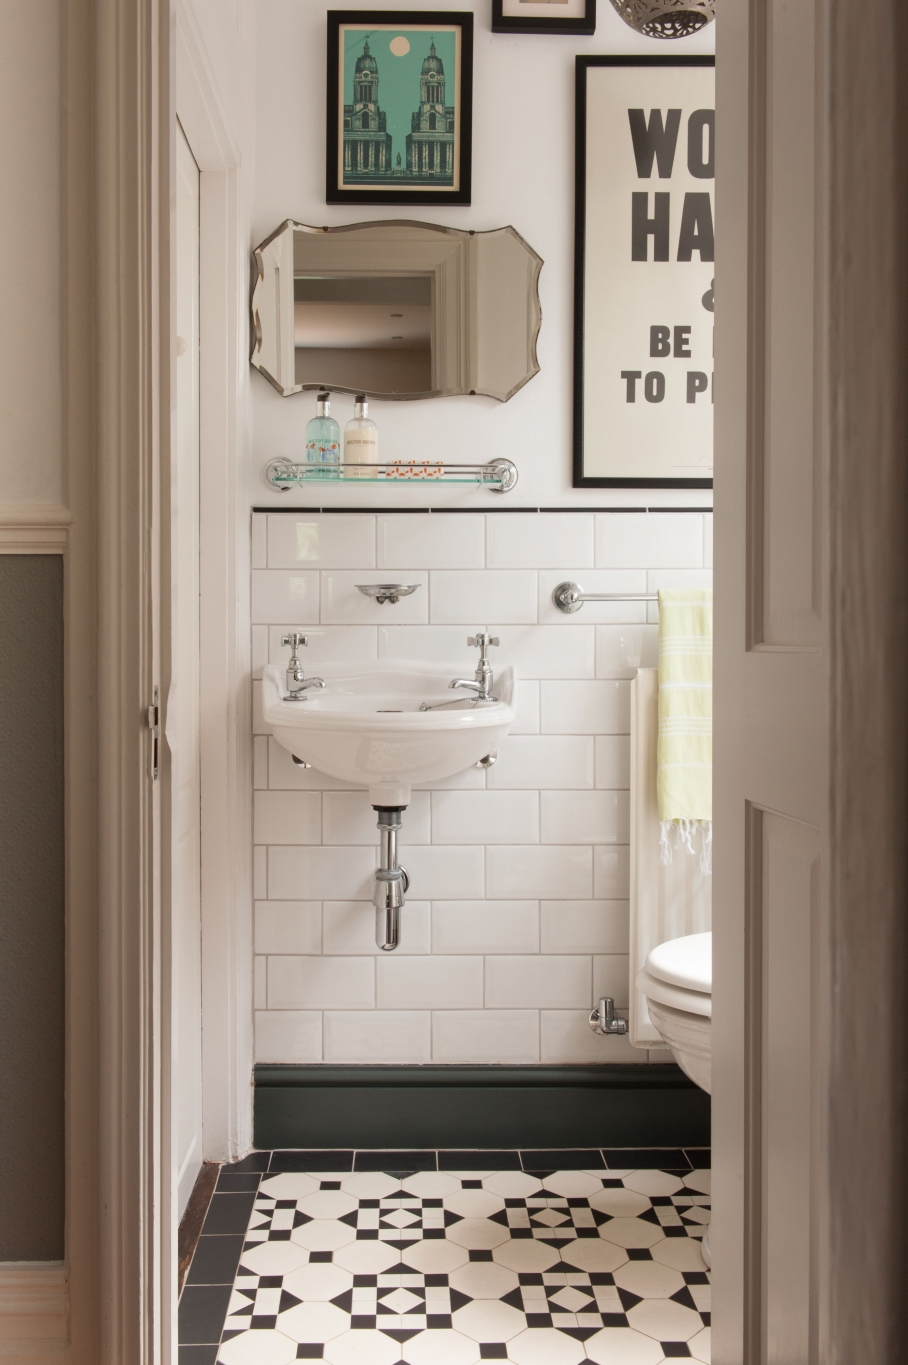 96 Models Sample Awesome Small Bathroom Ideas-9297